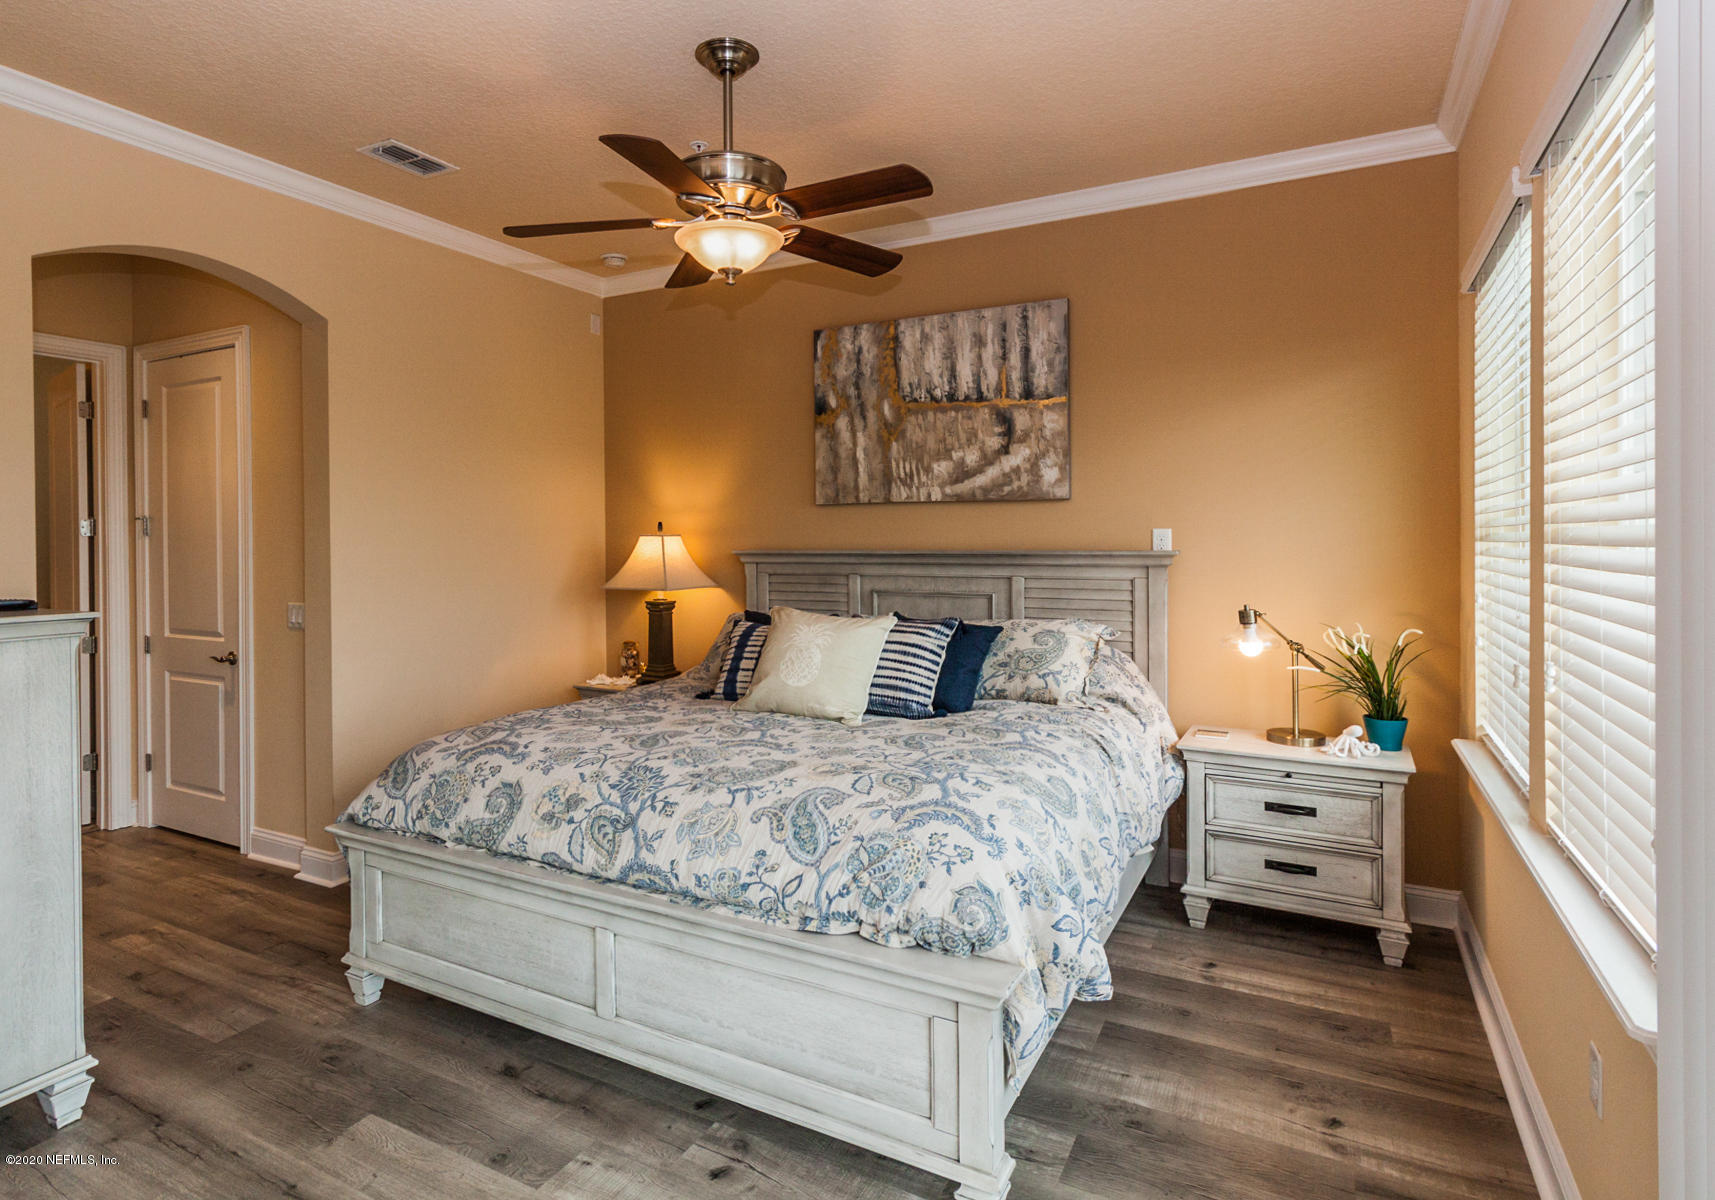 2718 SUNSET INLET, FLAGLER BEACH, FLORIDA 32136, 3 Bedrooms Bedrooms, ,3 BathroomsBathrooms,Residential,For sale,SUNSET INLET,1027574